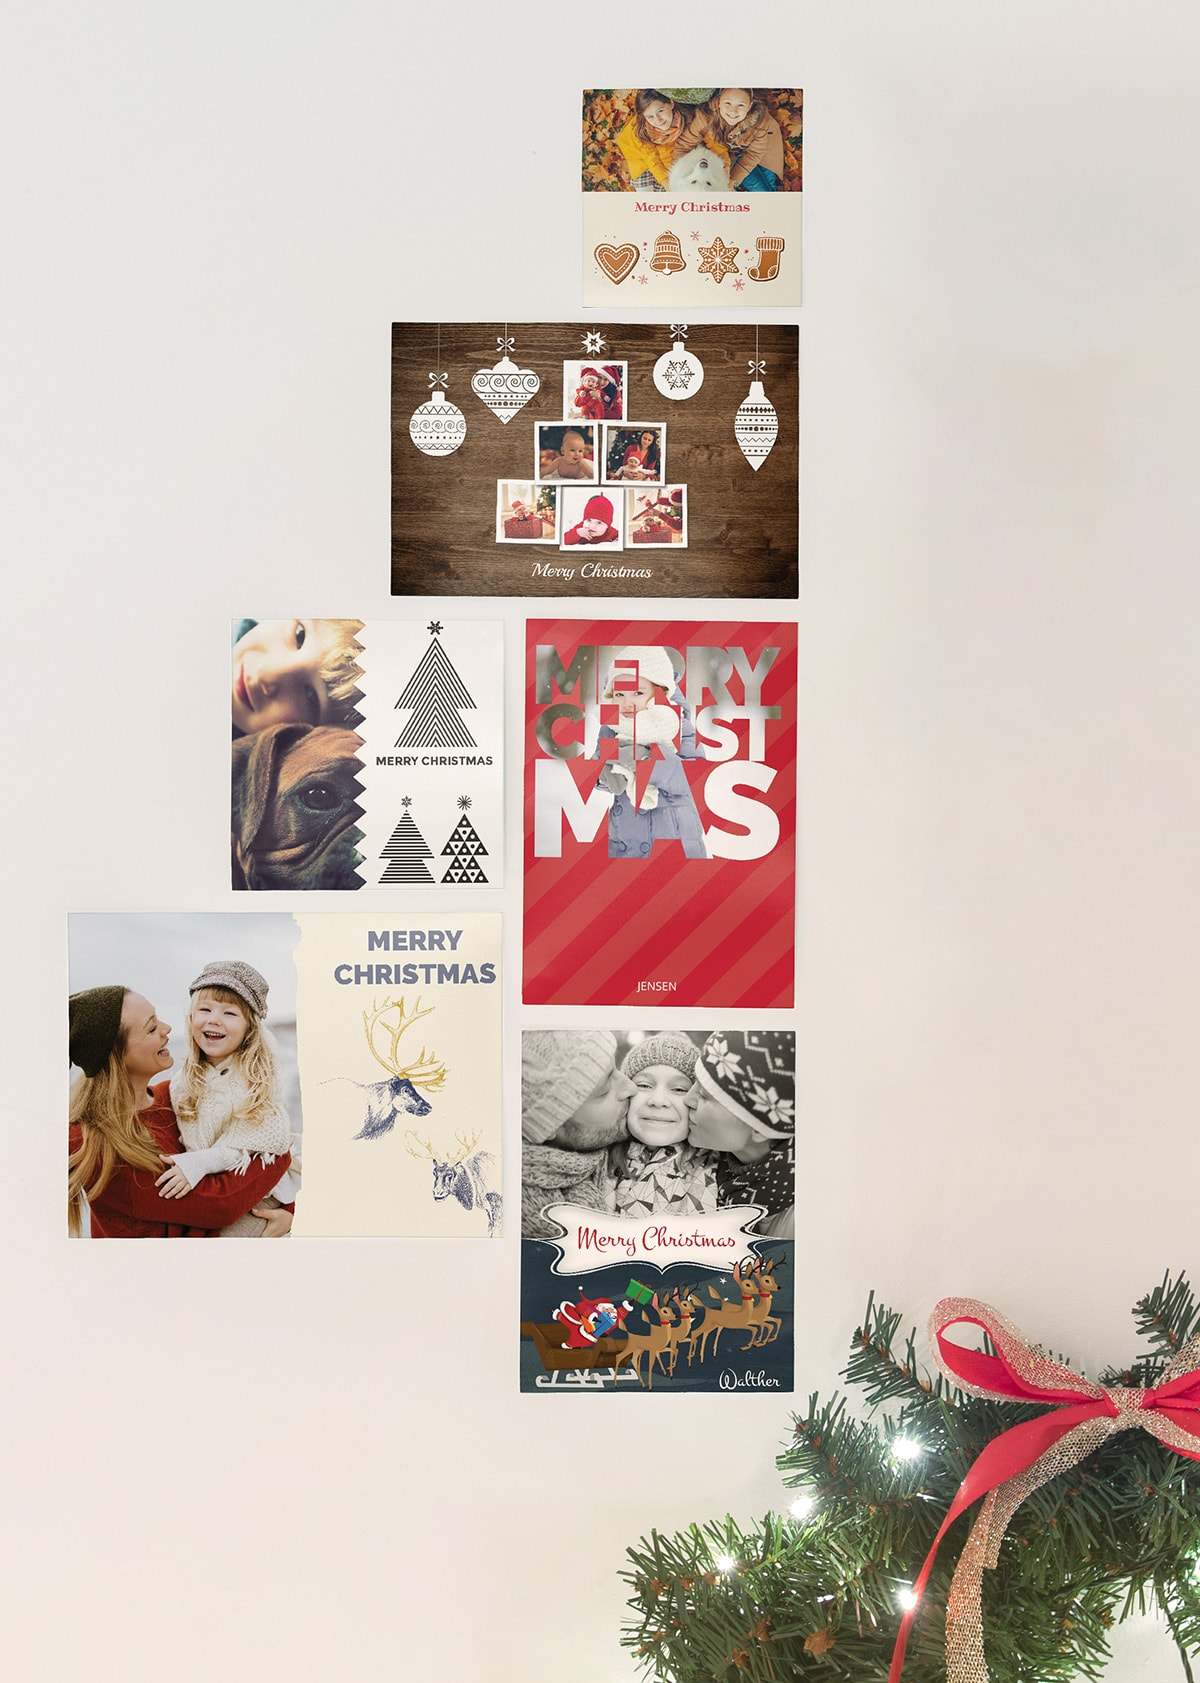 7 creative ways to display your Christmas cards